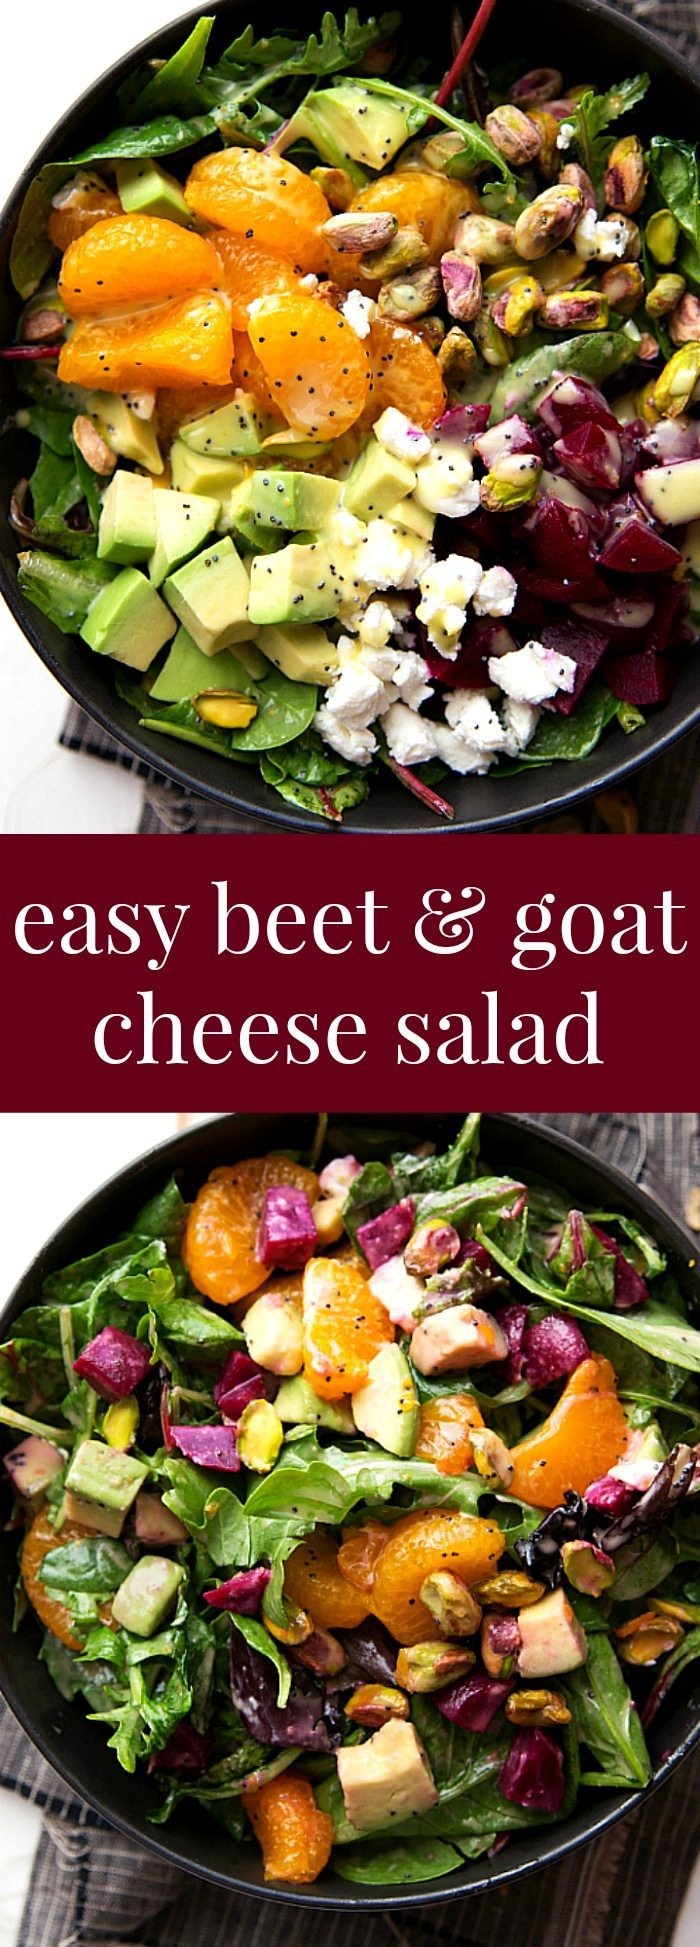 orange salad beet apple and orange salad beet apple and orange salad ...